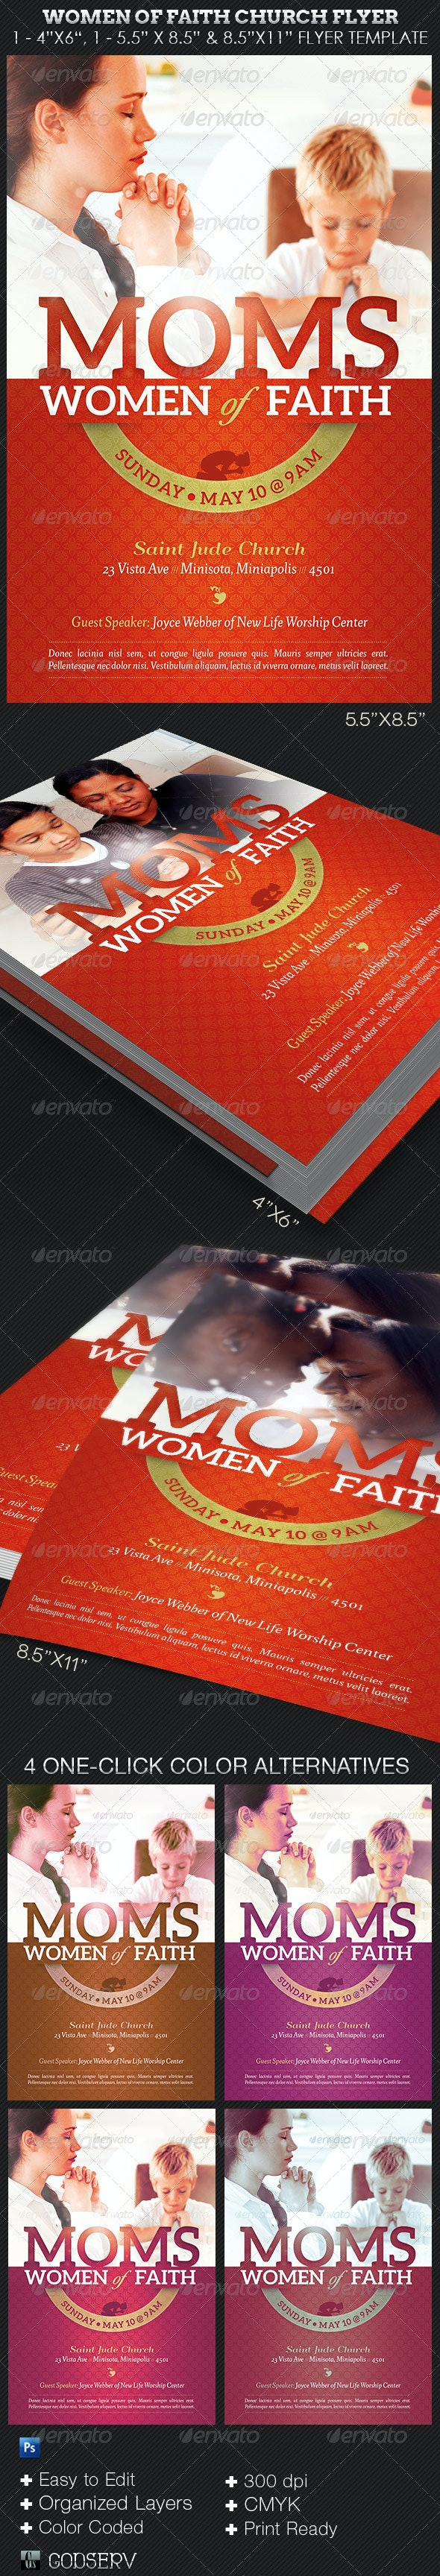 Women of Faith Church Flyer Photoshop Template - Church Flyers